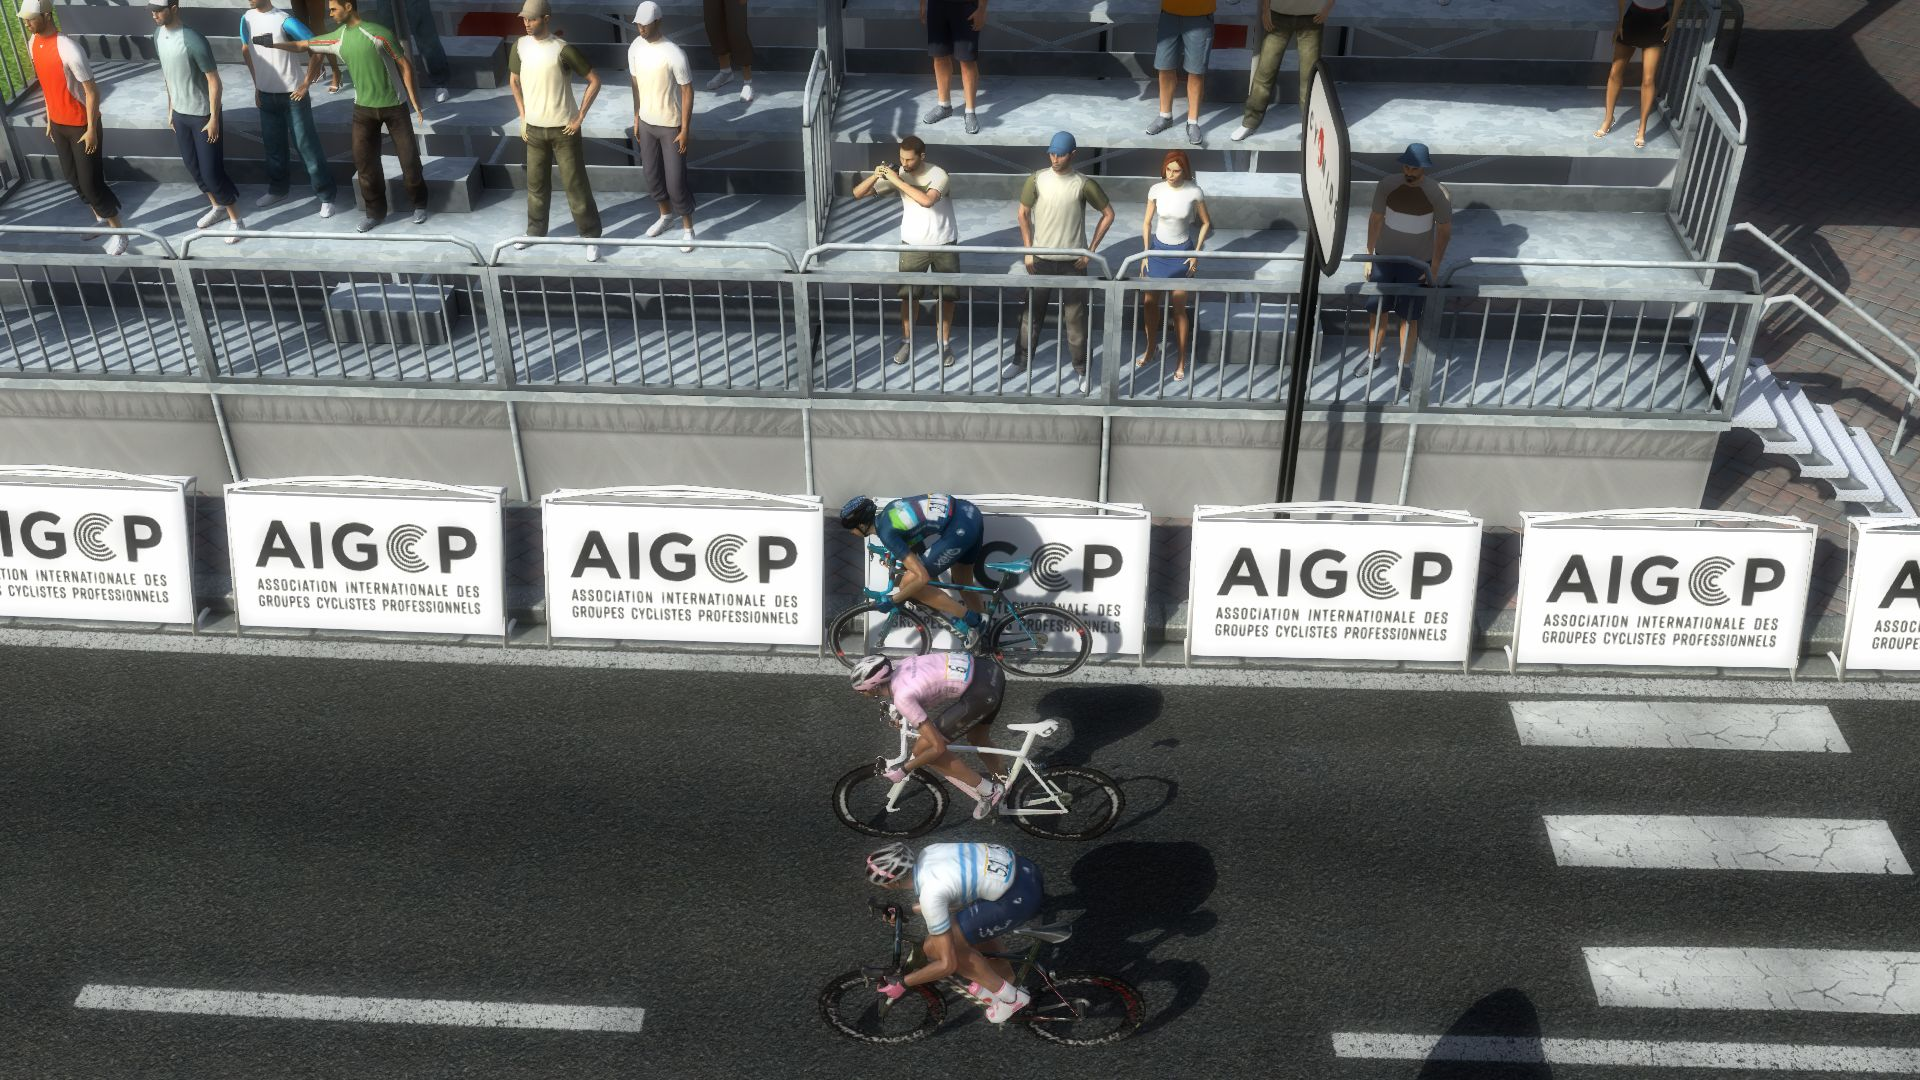 pcmdaily.com/images/mg/2019/Races/HC/Slovenie/mg19_slo_s03_19.jpg